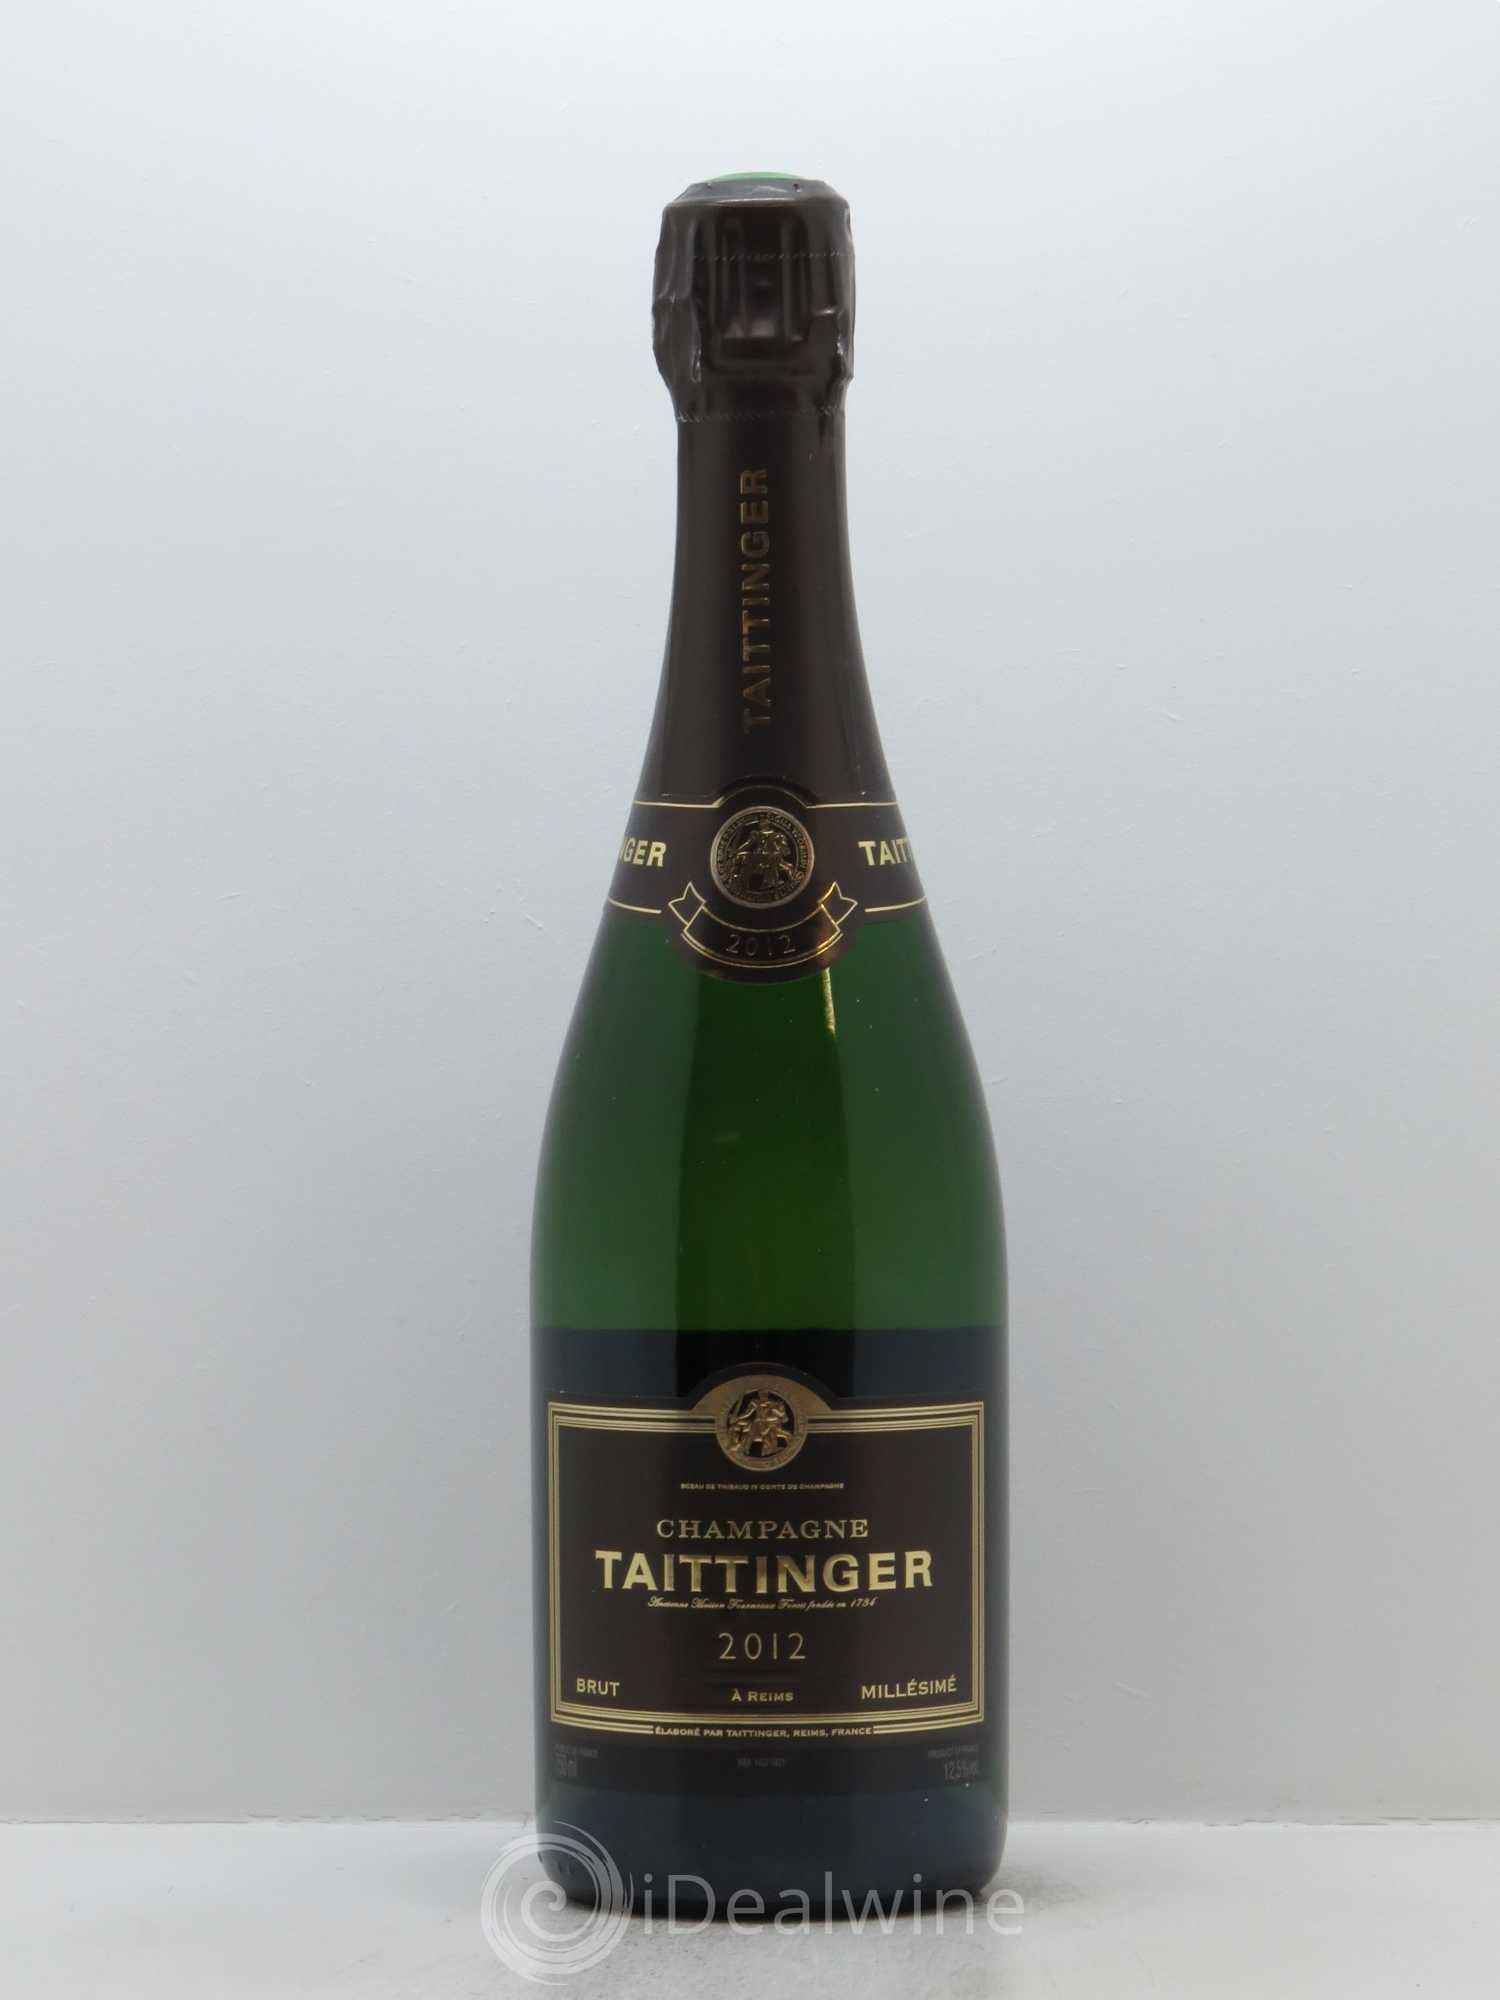 Brut Champagne Taittinger  2012 - Lot of 1 Bottle